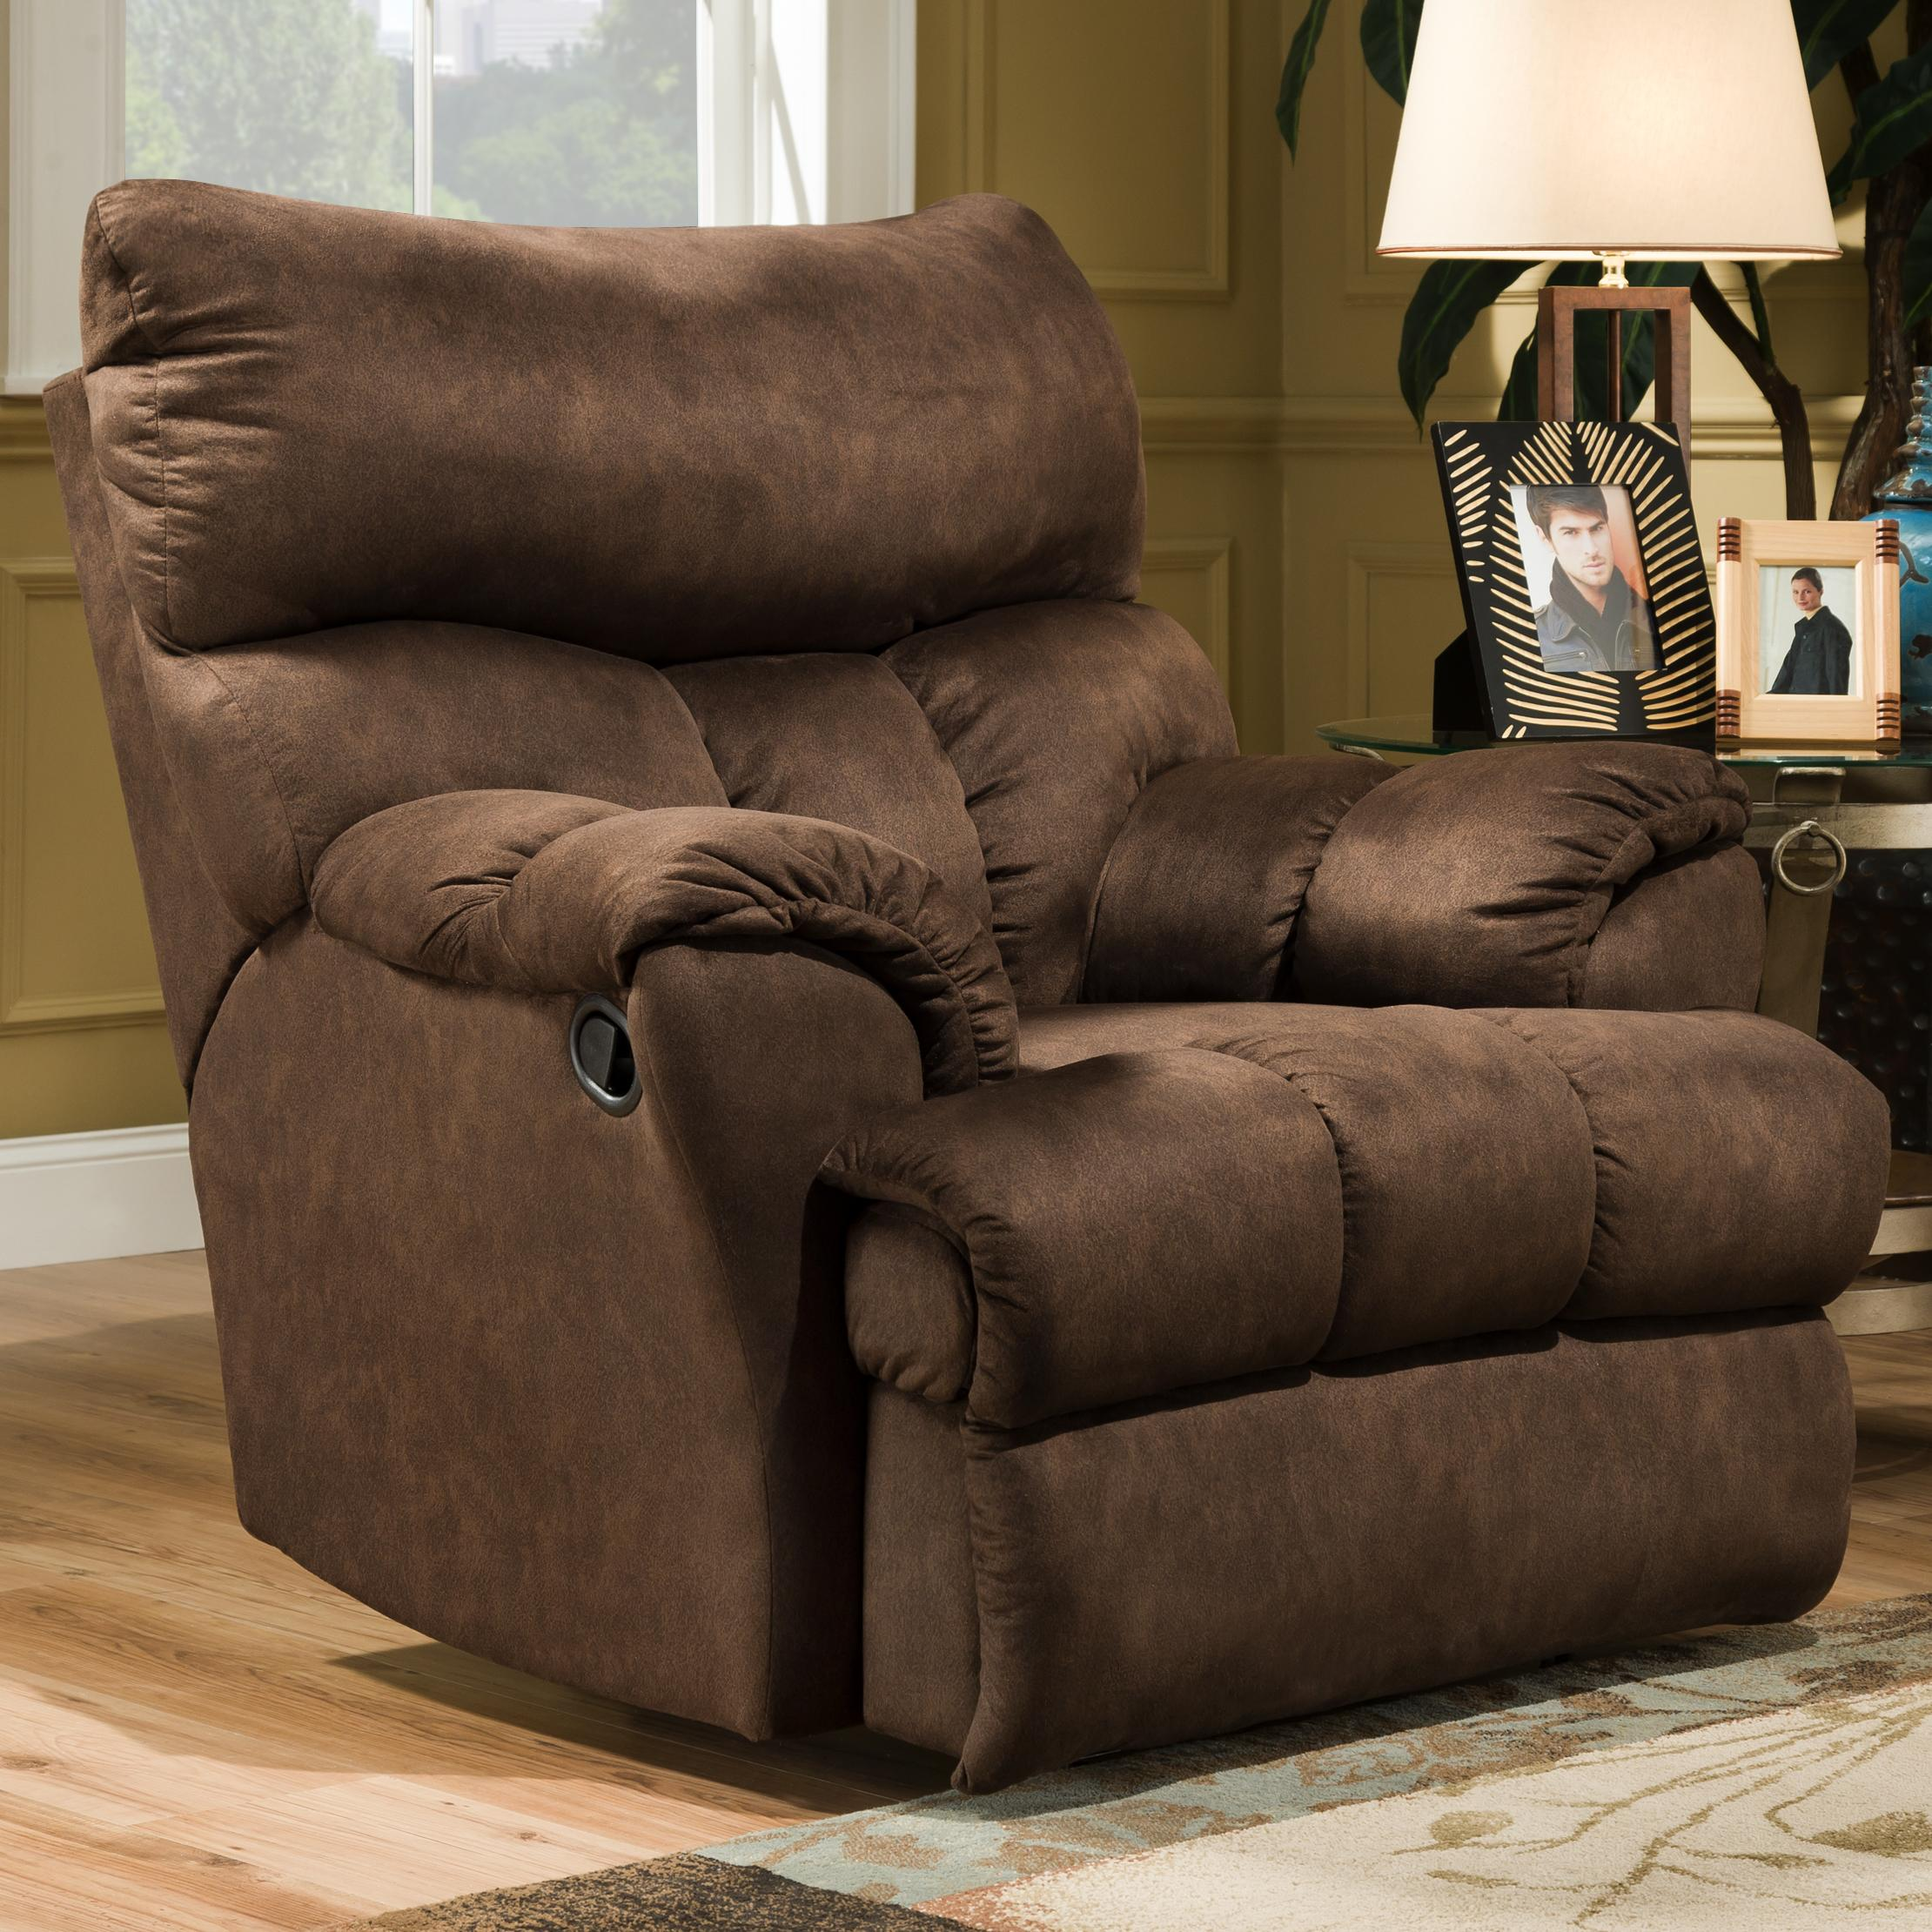 Deep upholstered brown recliner in large size and hidden footboard feature : recliner size - islam-shia.org